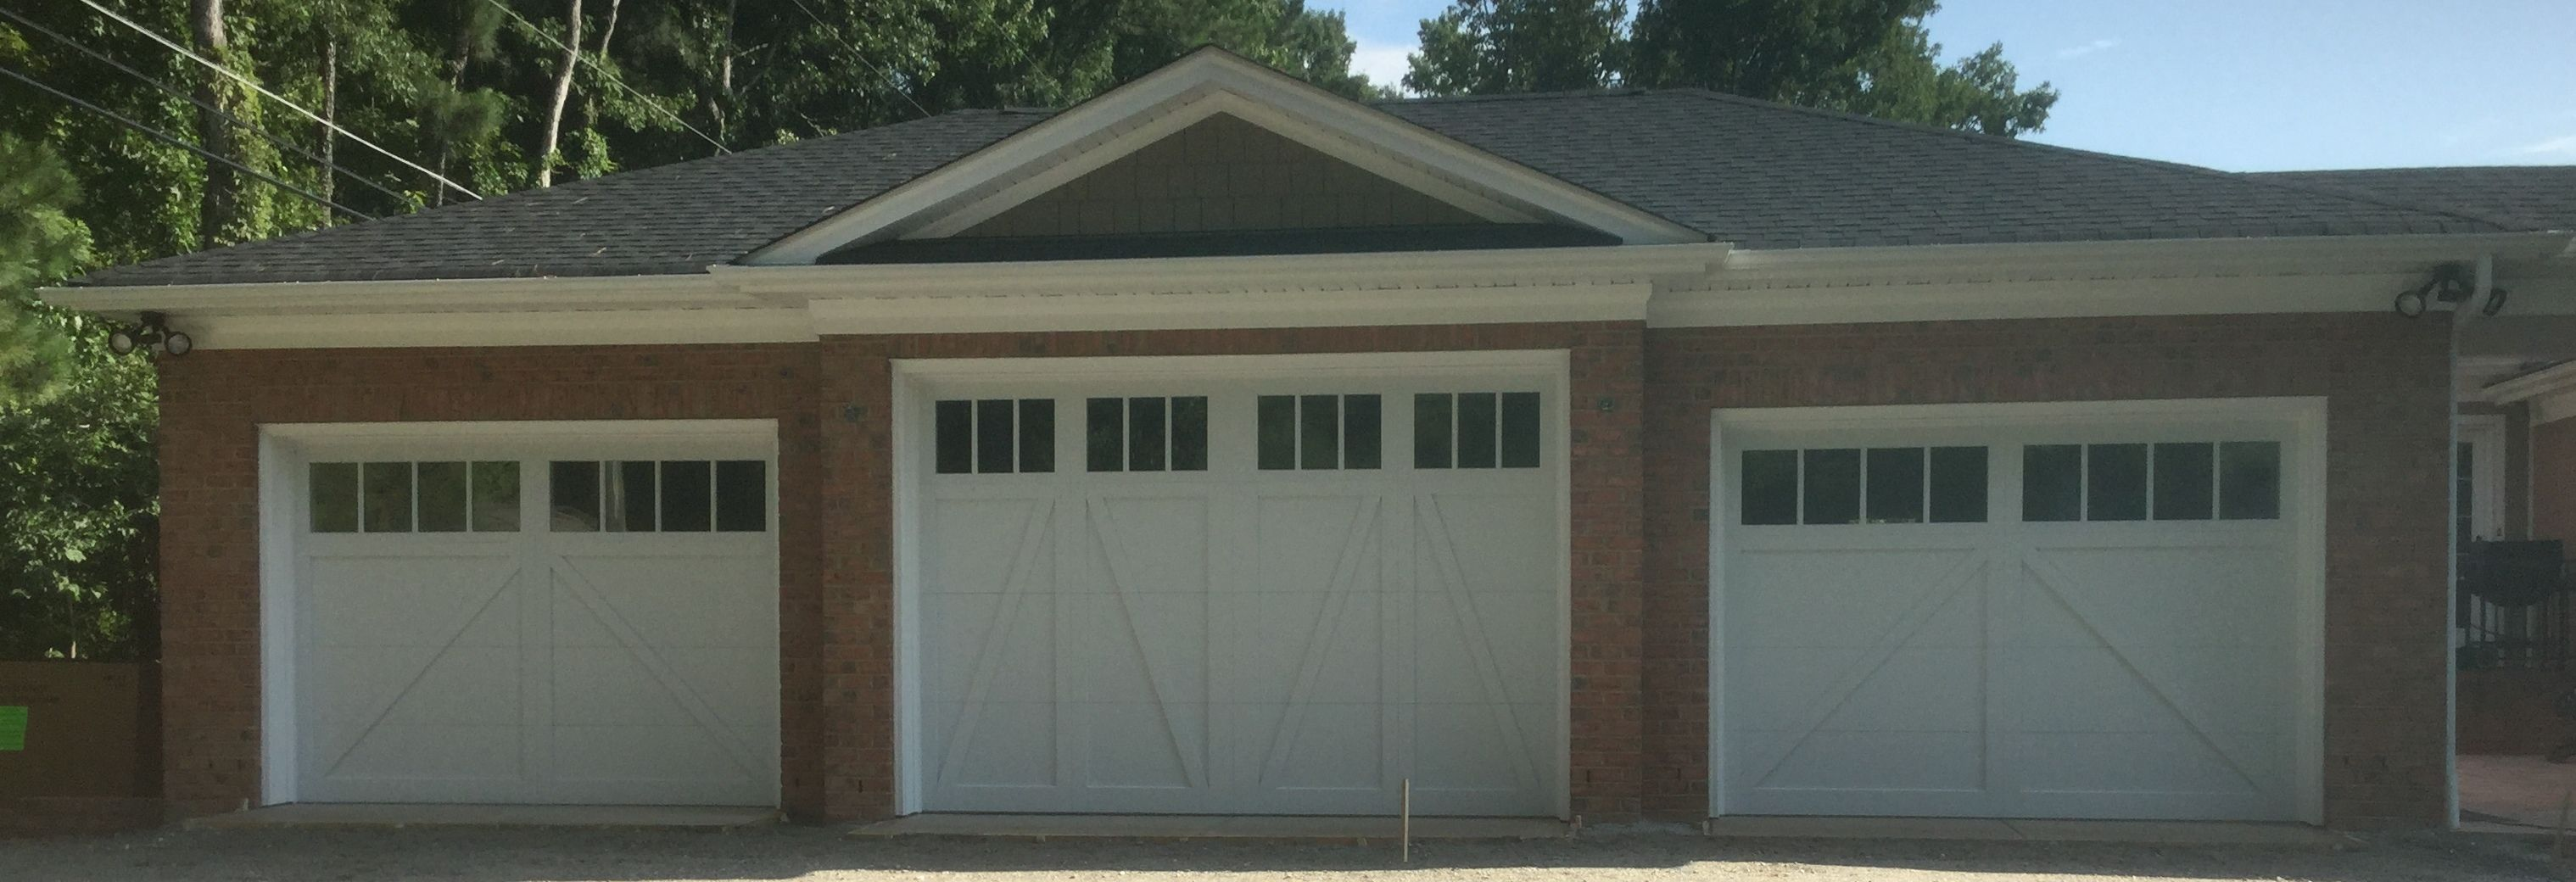 Two 10x7 One 12x8 Model 5633 Double Sided Steel Insulated Garage Doors With Fiber Accent Batten Overlay Square To Garage Door Insulation Garage Doors Doors